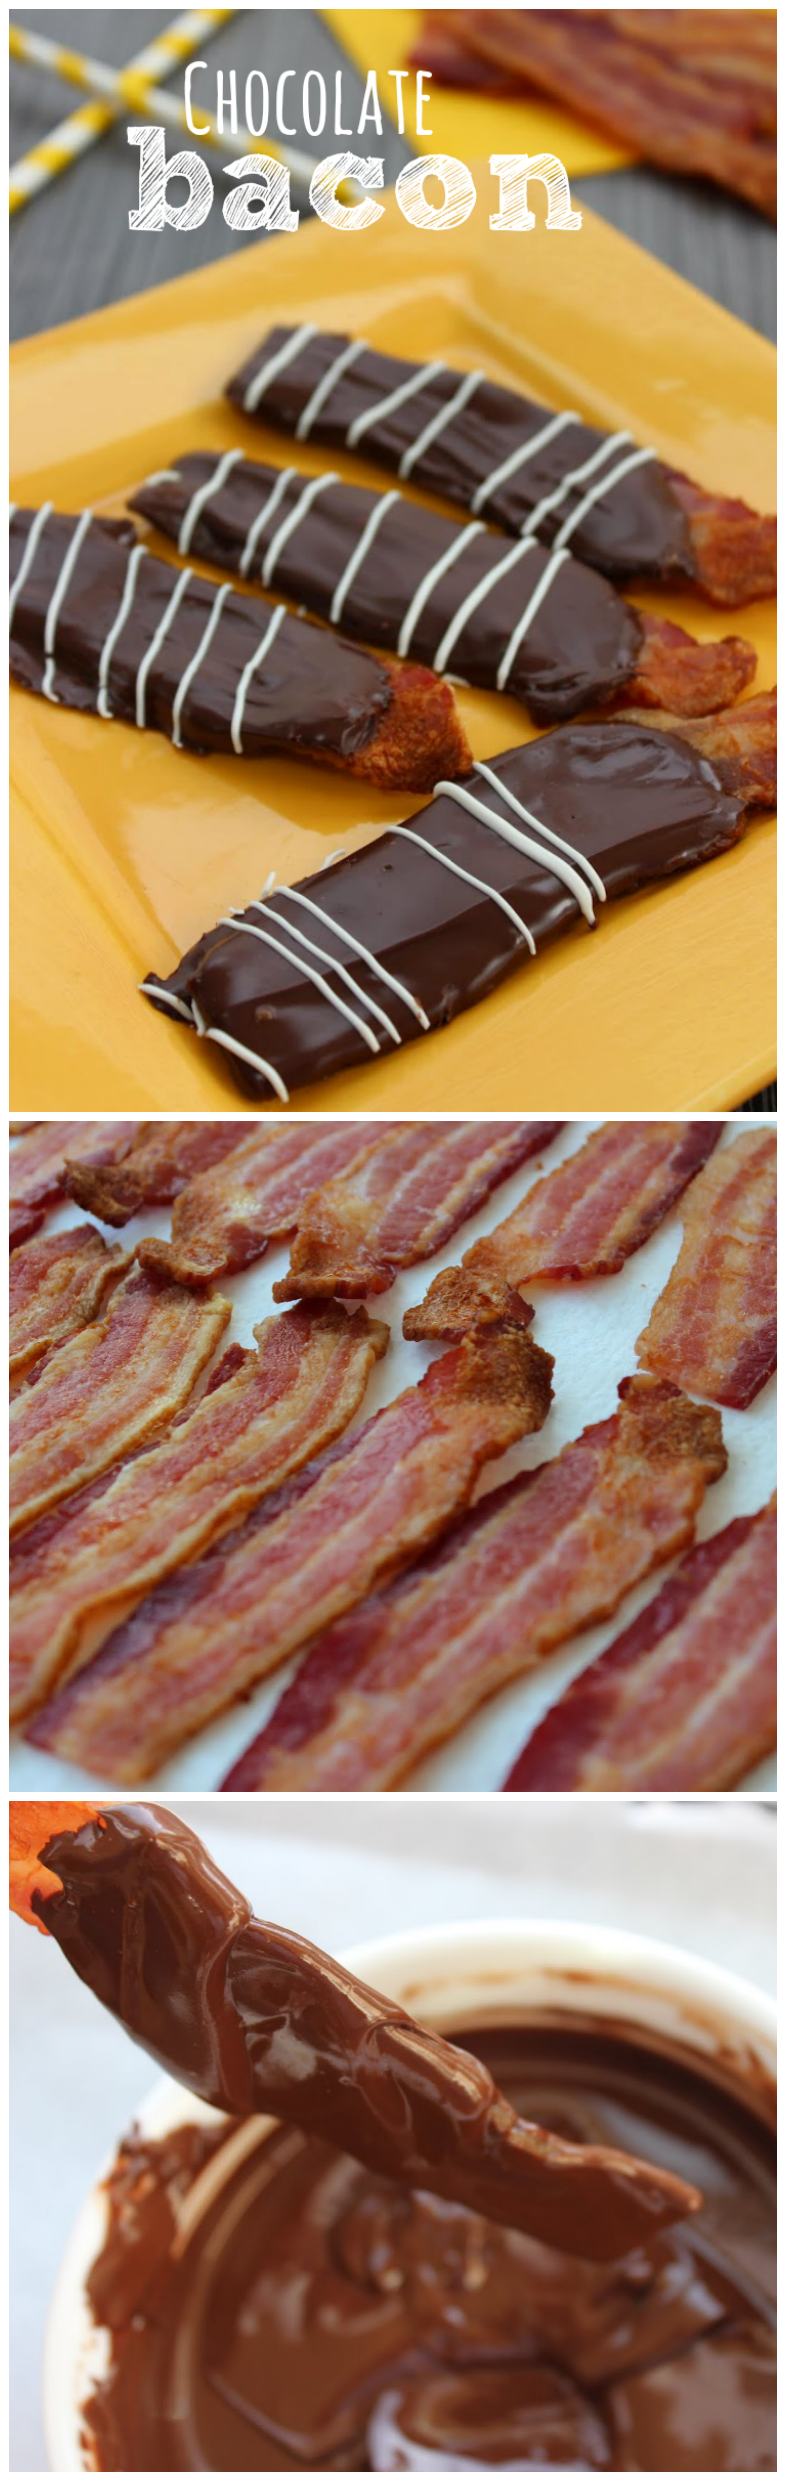 bacon.png Chocolate Covered Bacon